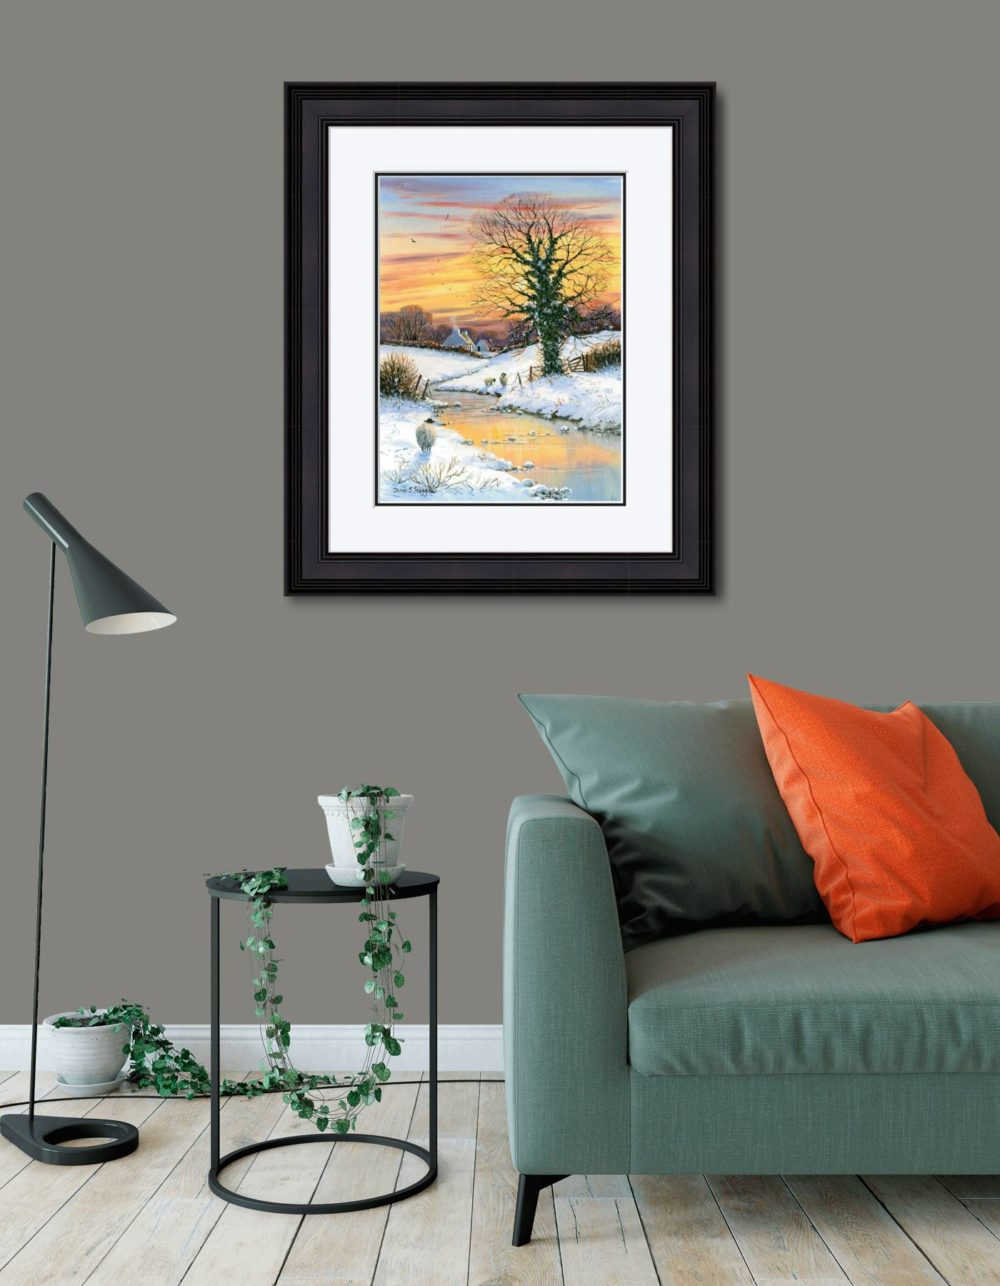 First Snows Of Winter Print (Large) in Black Frame in Room